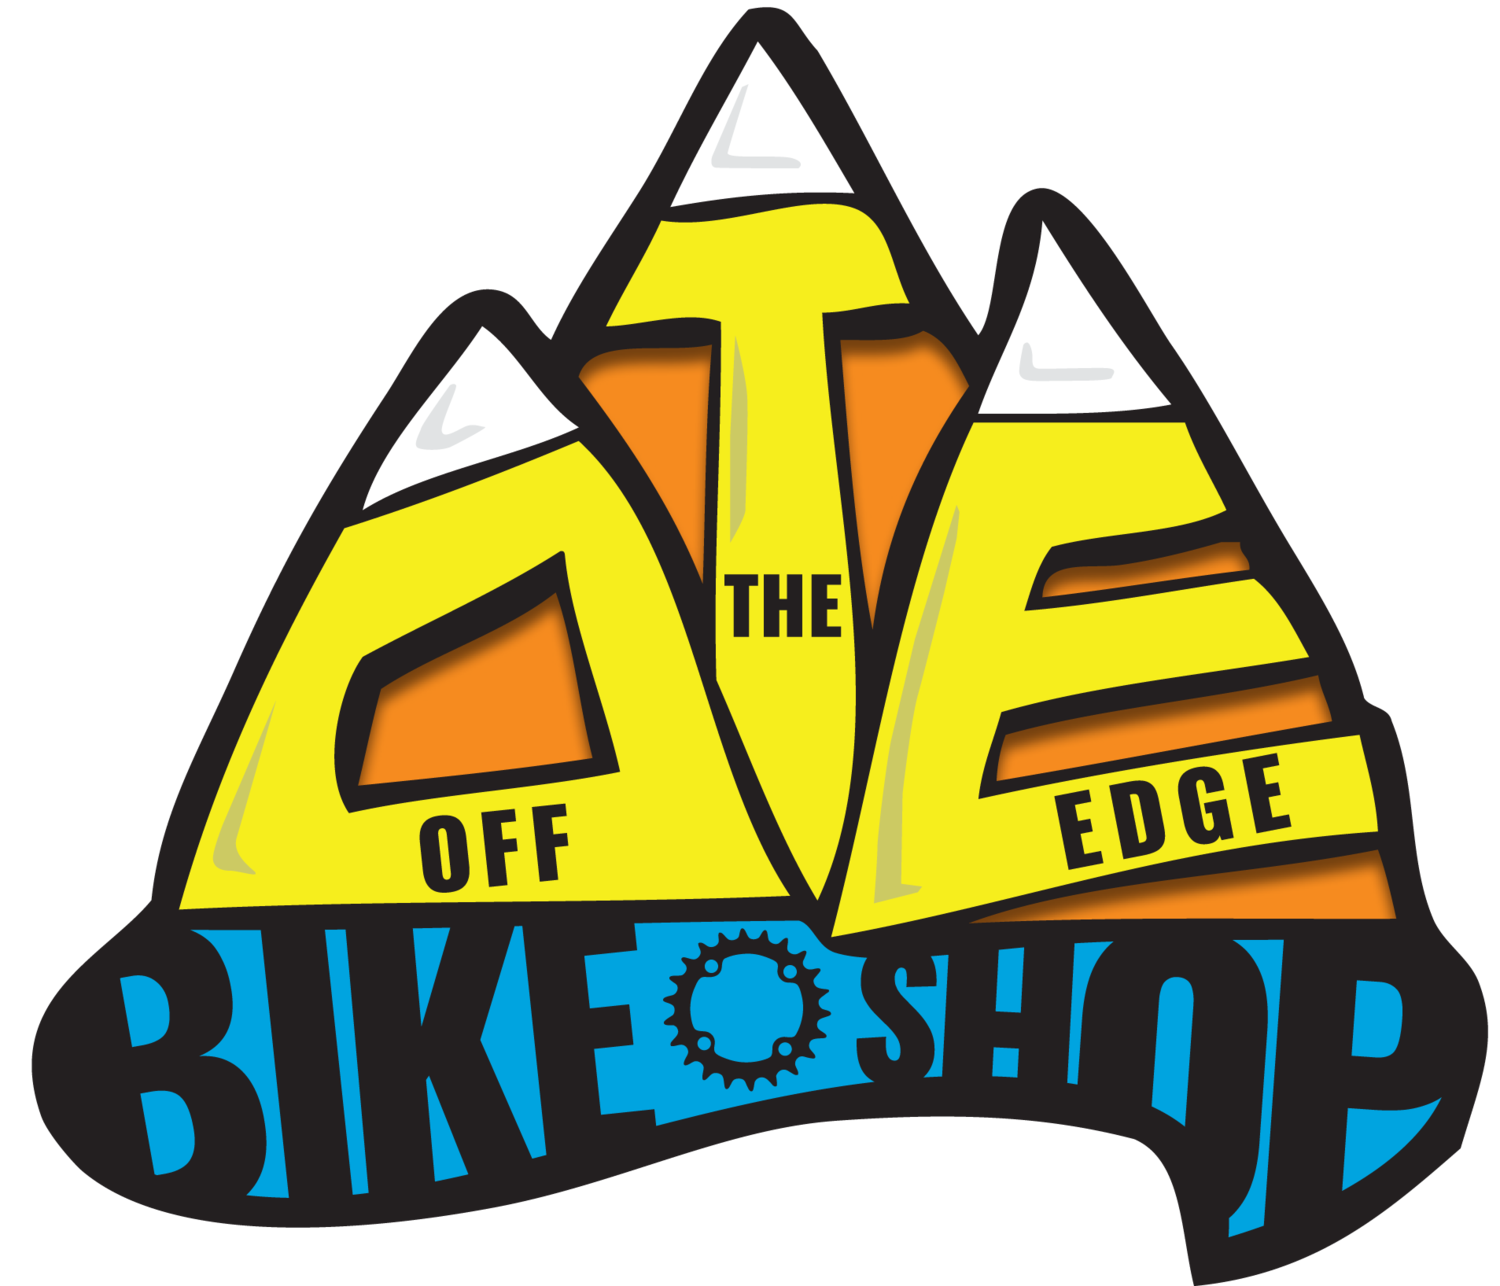 Off the Edge Bike Shop